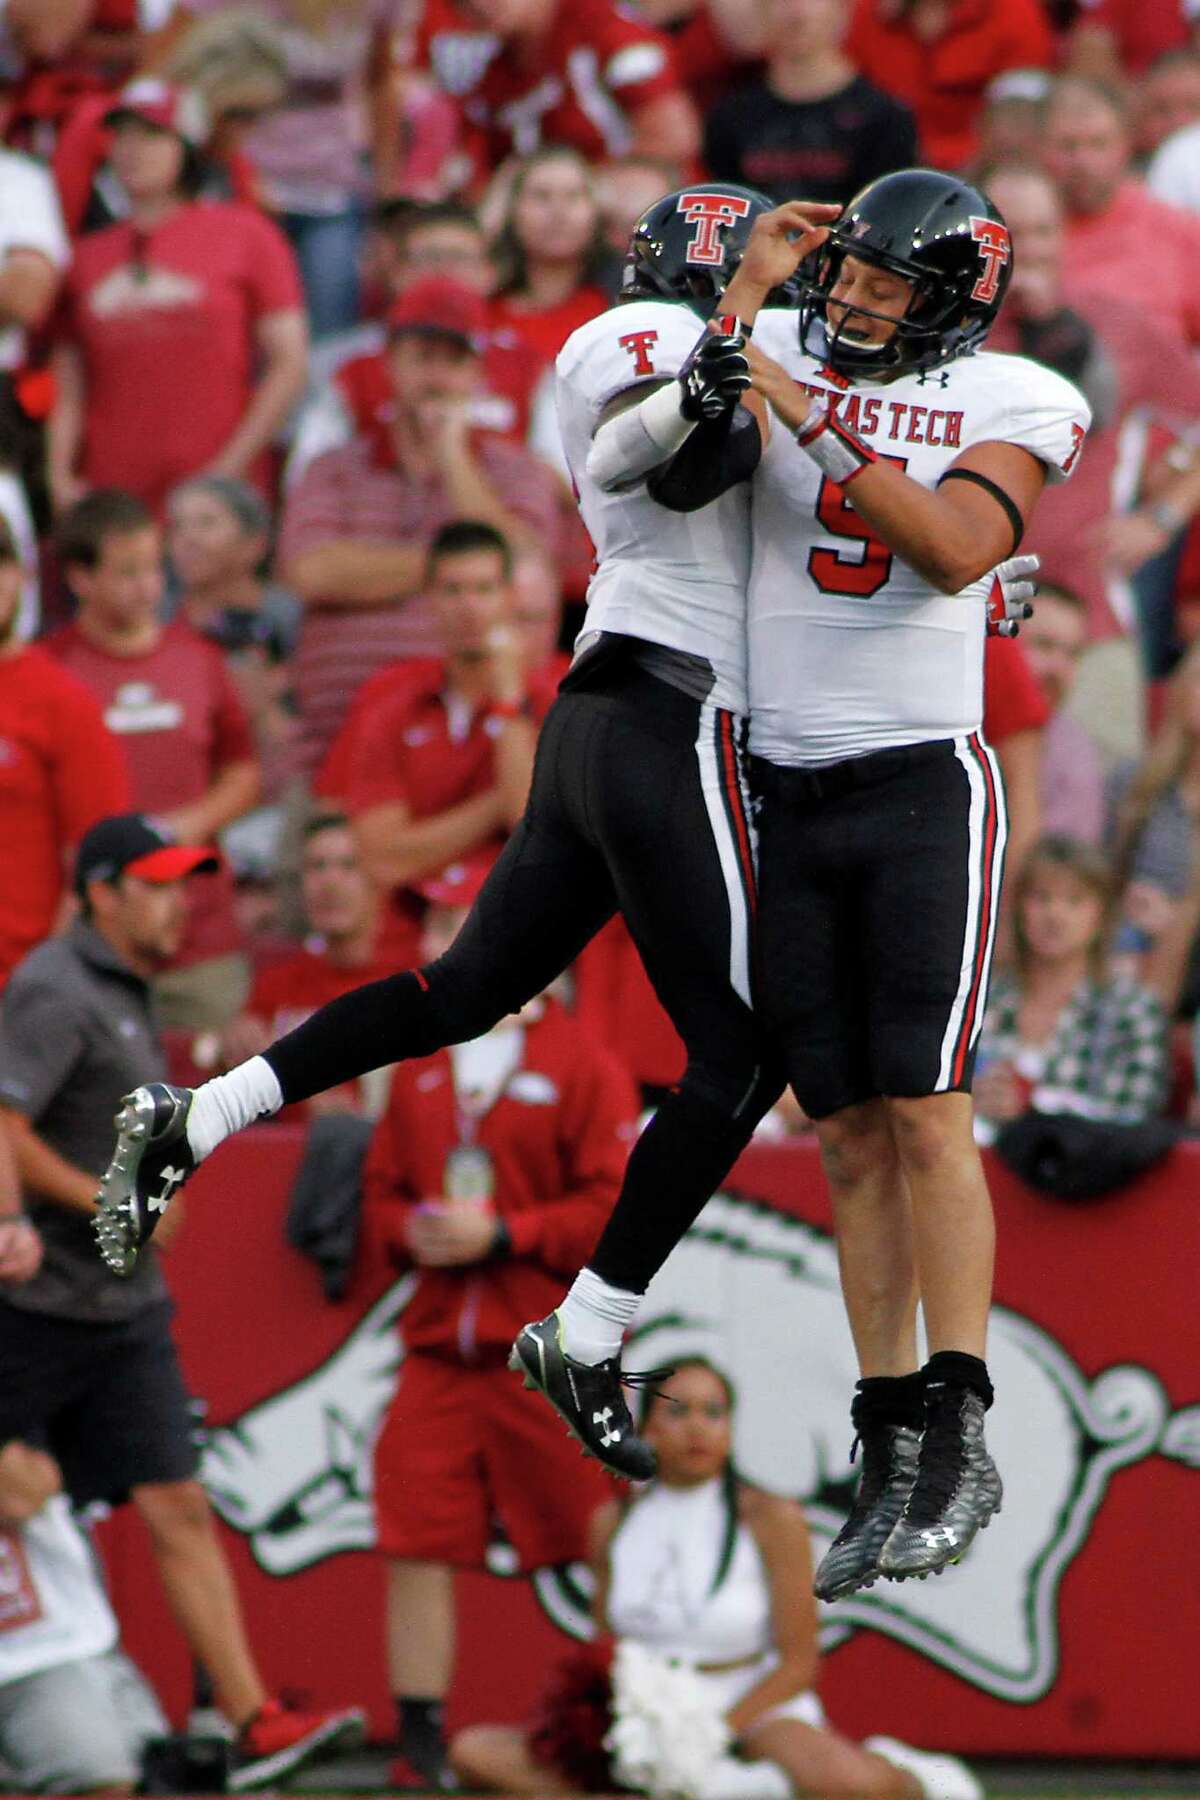 Texas Tech's Patrick Mahomes II, right, and Devin Lauderdale (6) celebrate after a touchdown during the first half of an NCAA college football game against Arkansas, Saturday, Sept. 19, 2015, in Fayetteville, Ark.